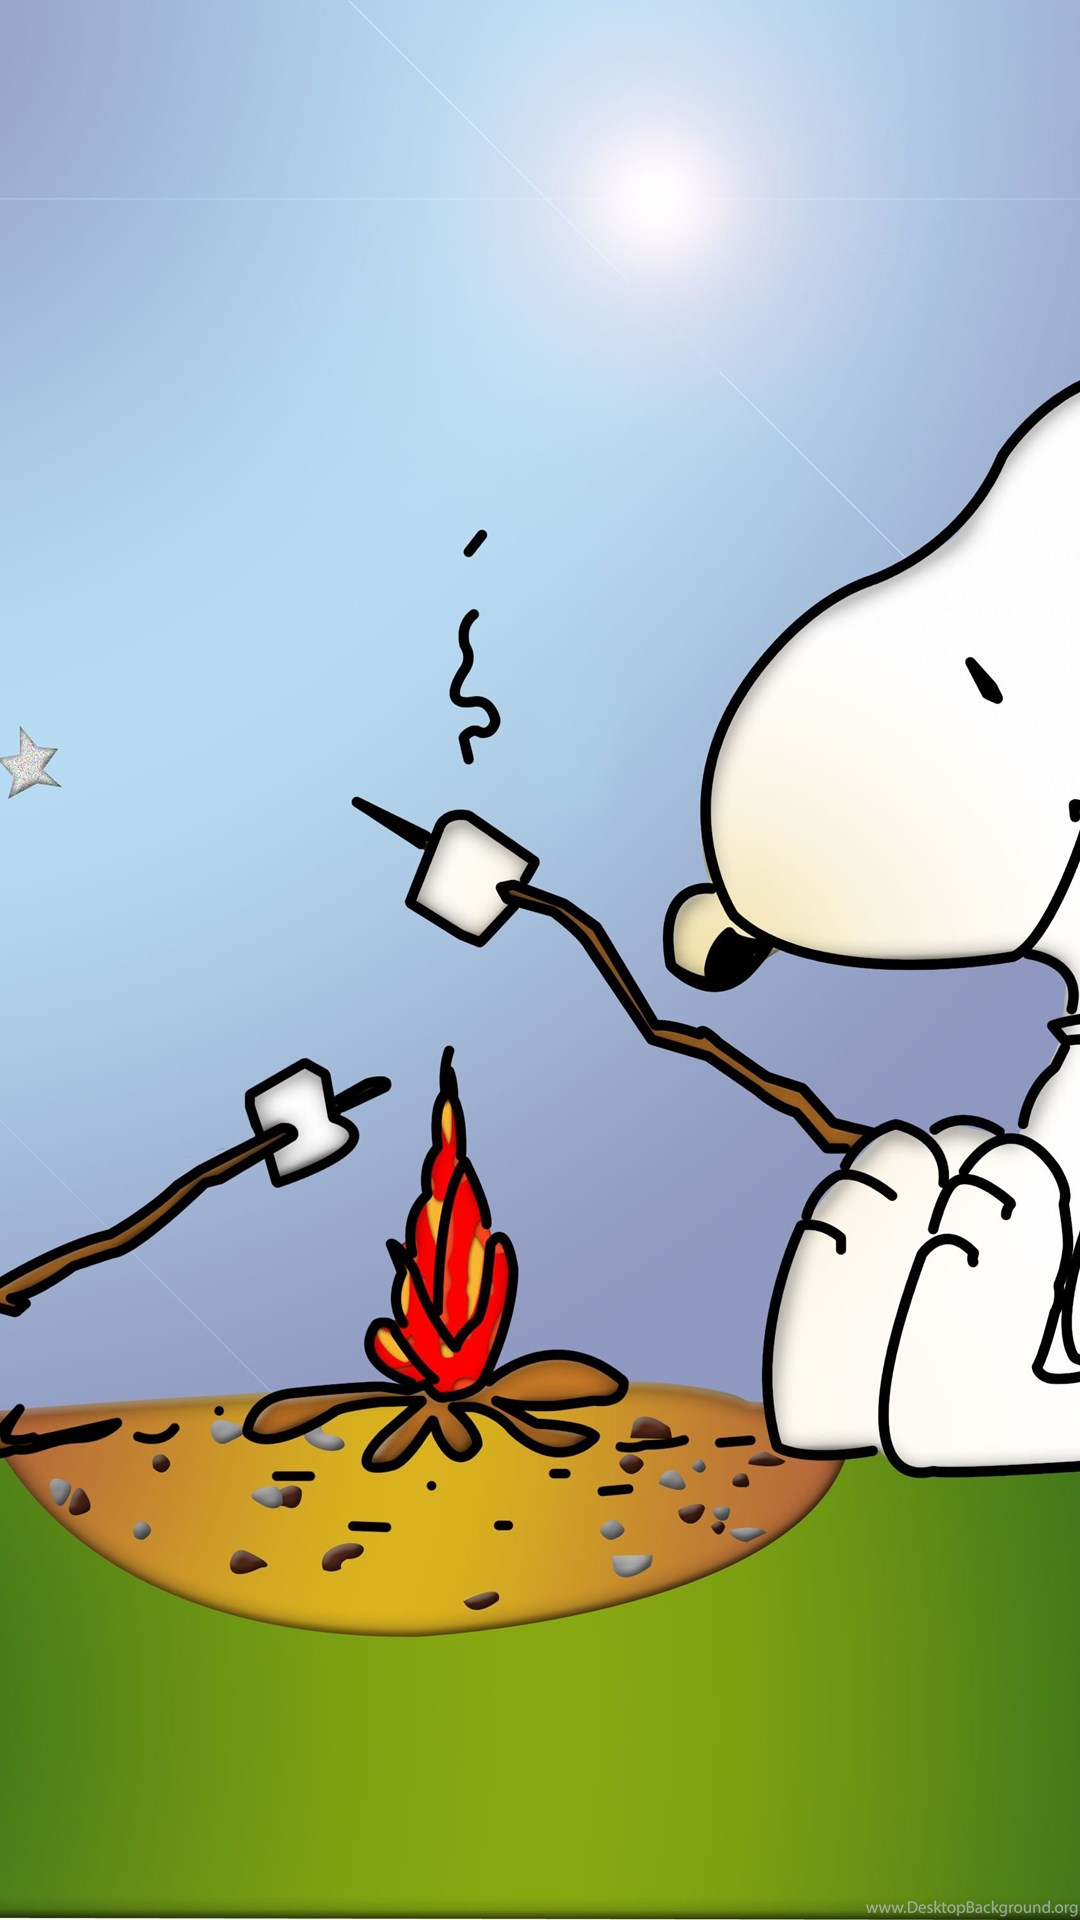 Snoopy Pictures Snoopy Wallpapers Desktop Background